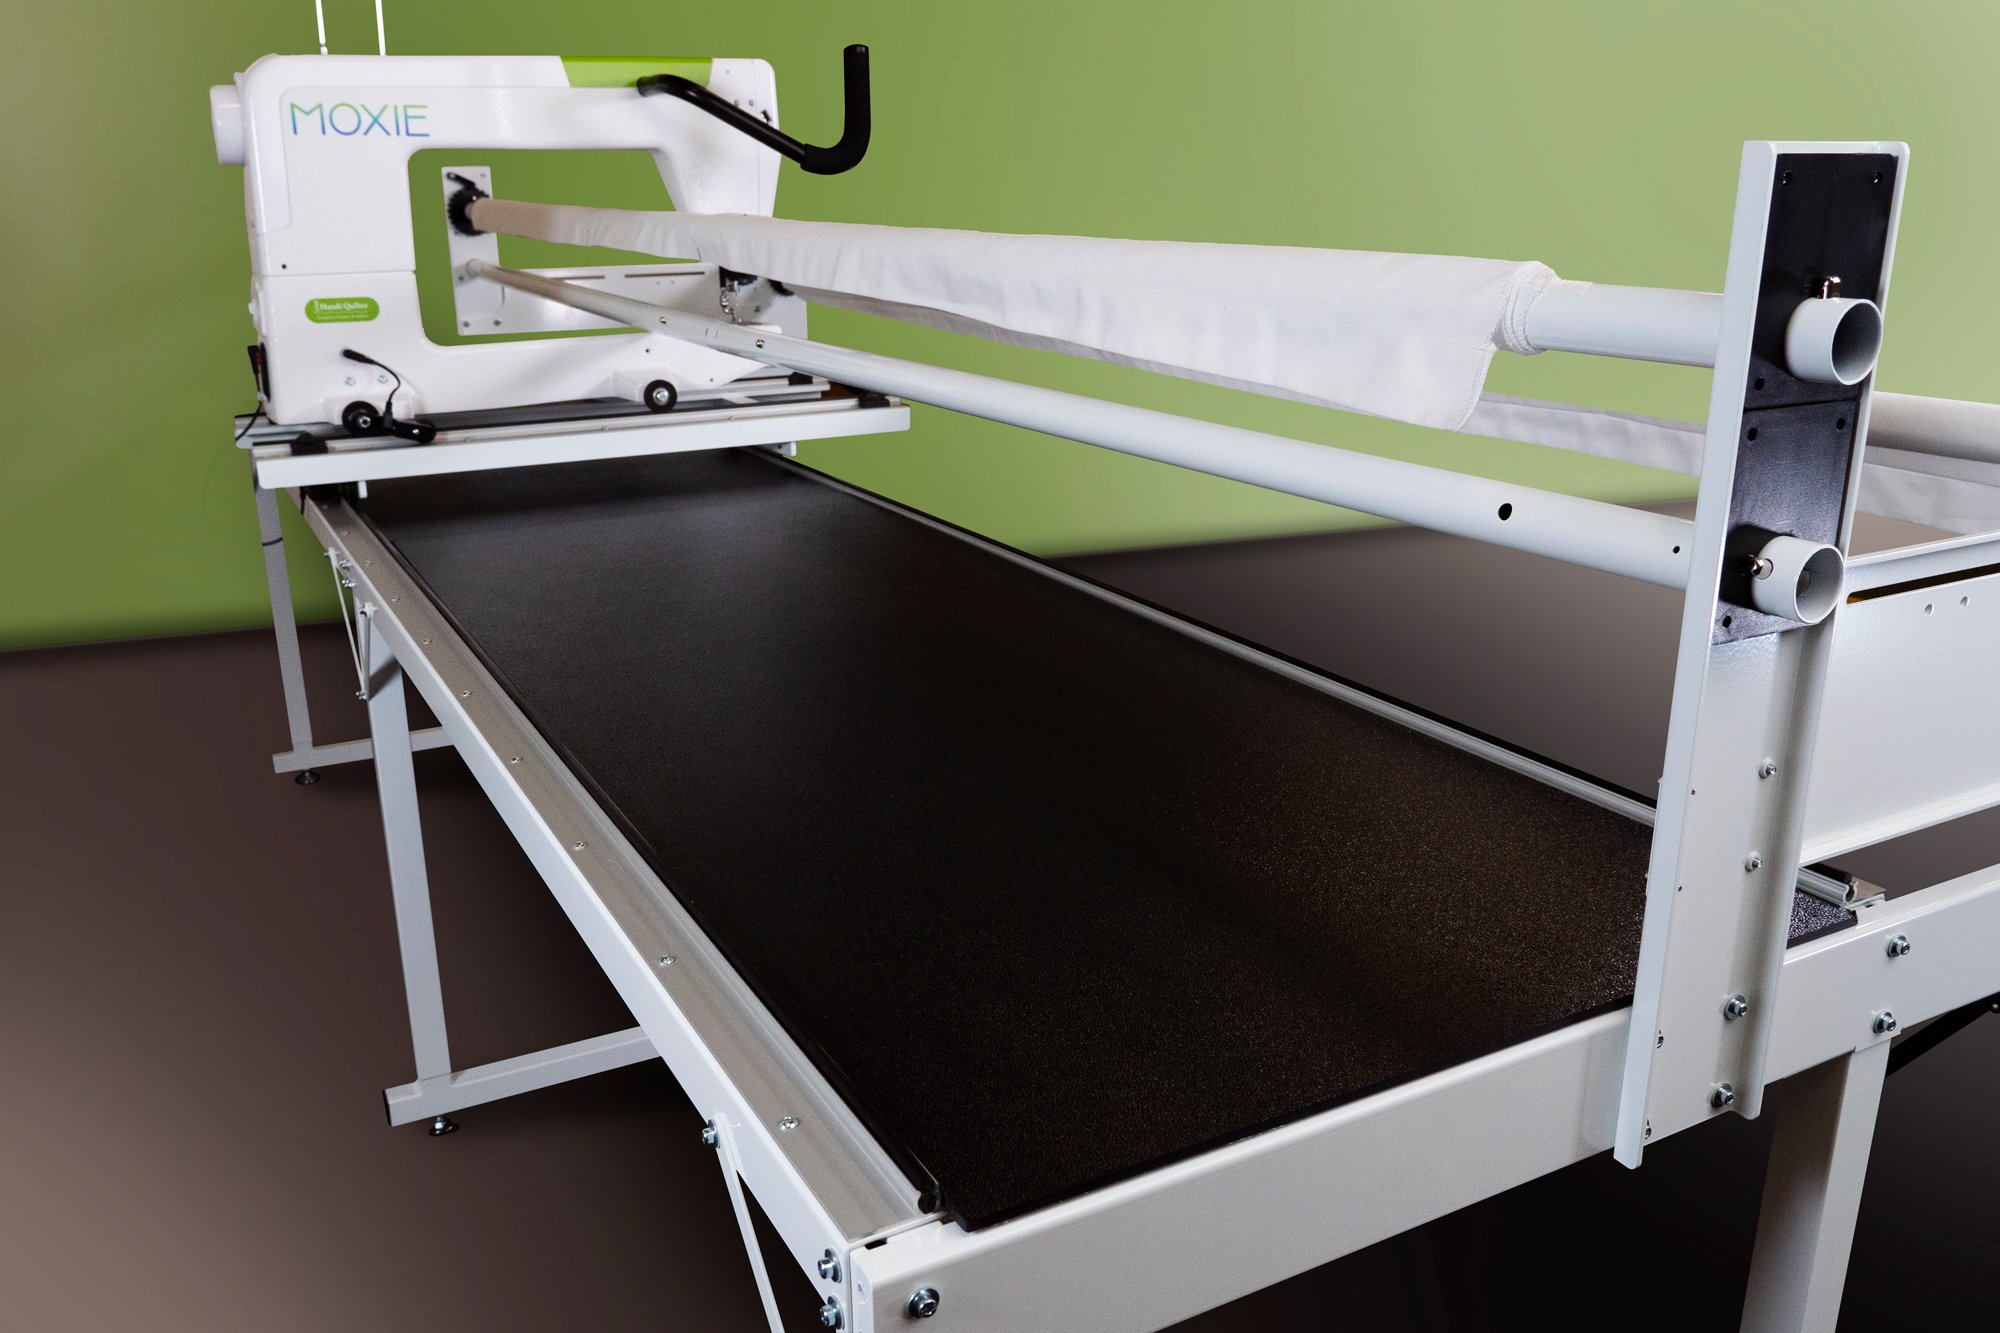 8-foot Longarm Quilting Frame Table Top Kit